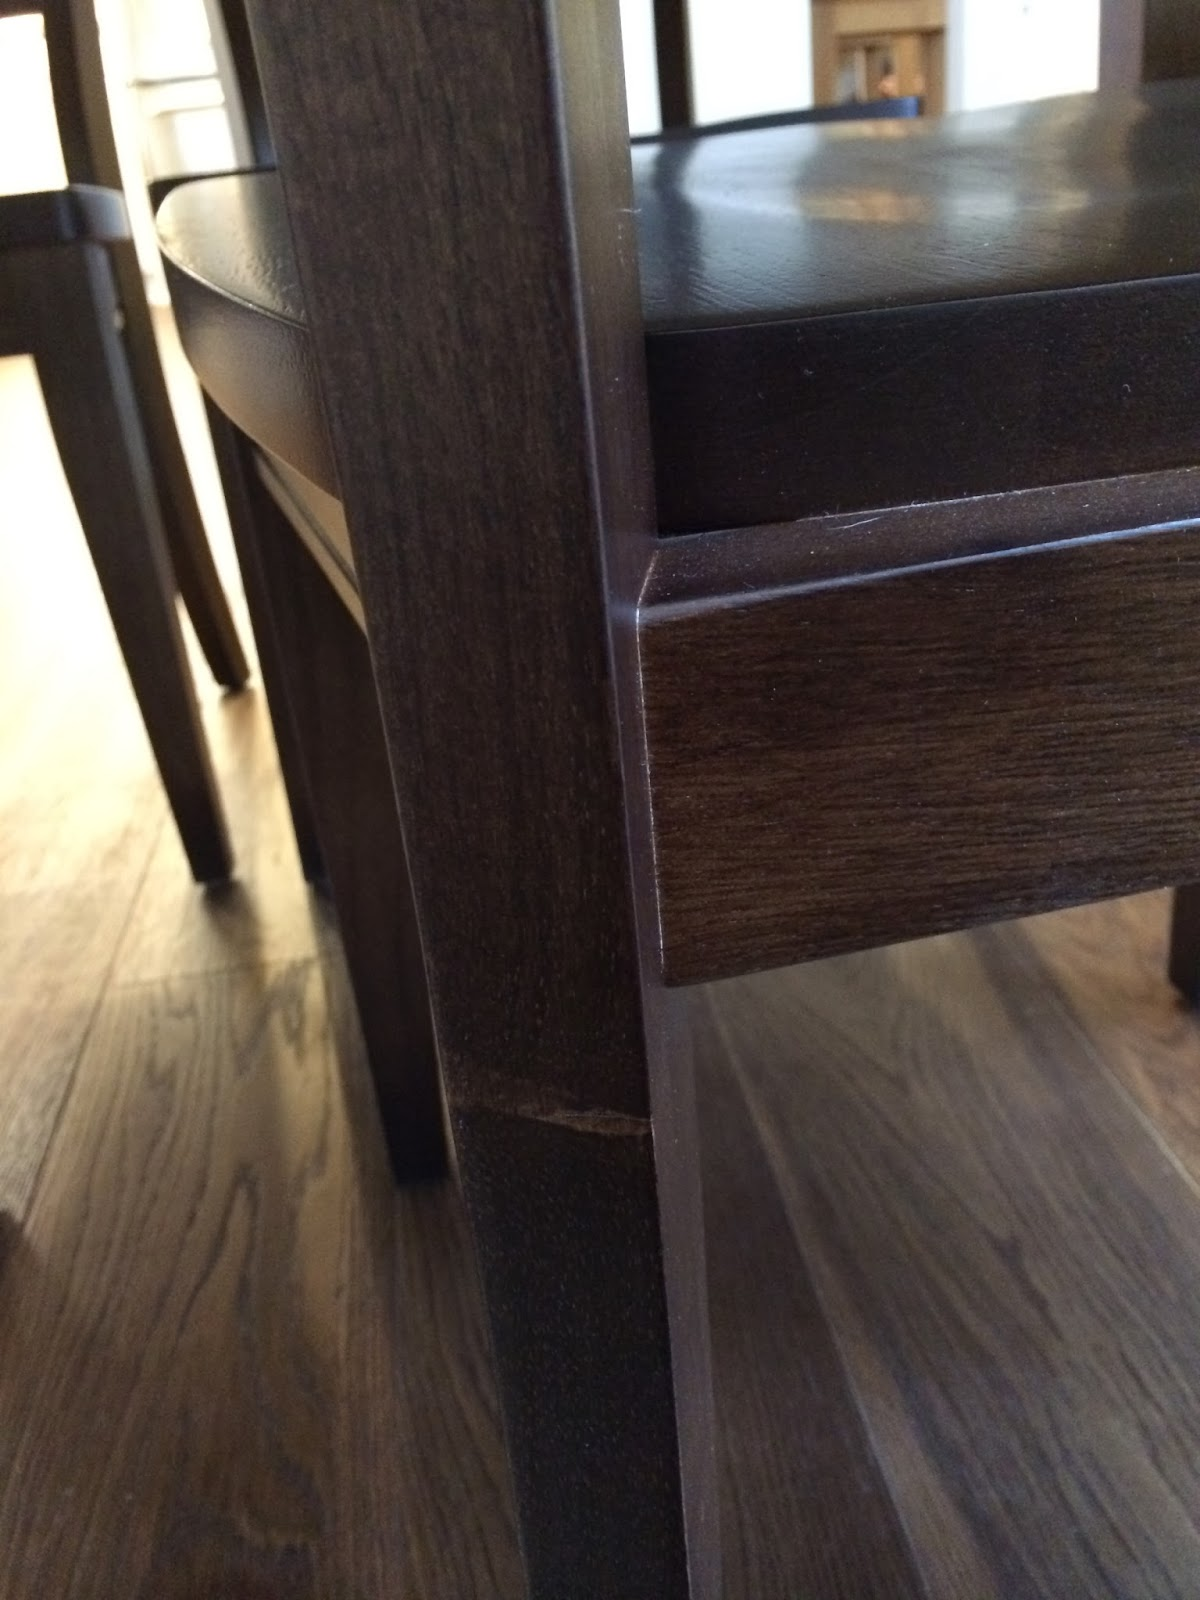 lessons of life bassett furniture review with too much compromise